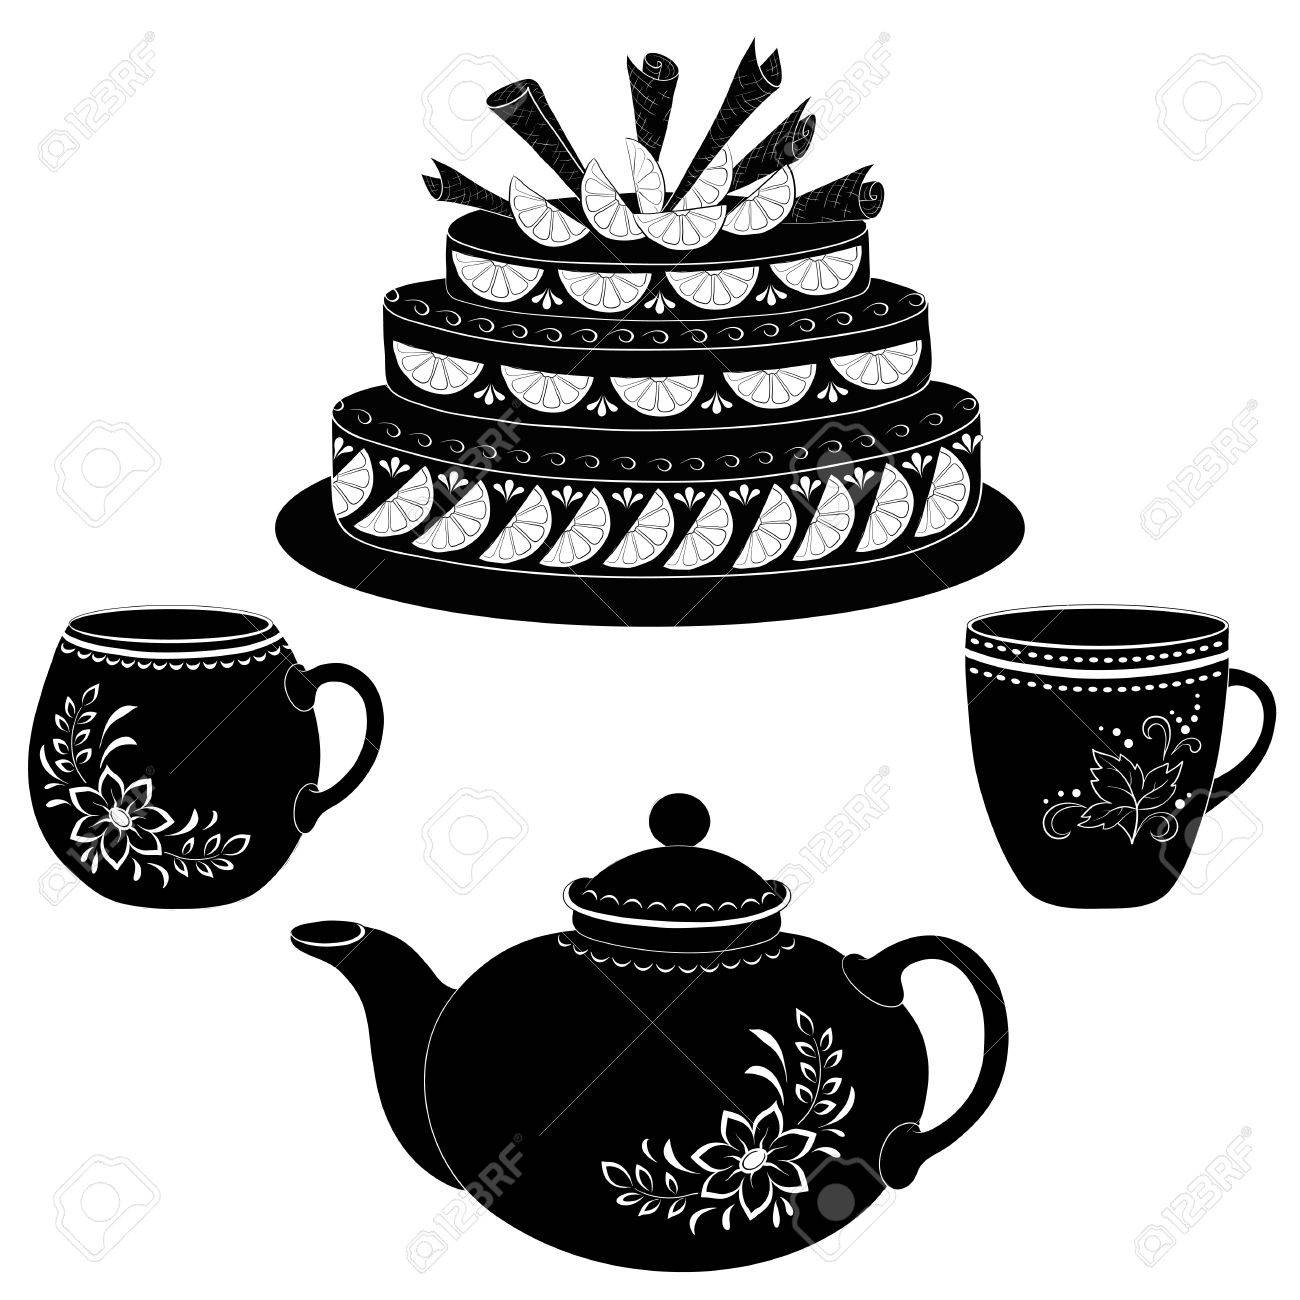 Holiday cake, teapot and cups, black contours on white background Stock Vector - 17962503